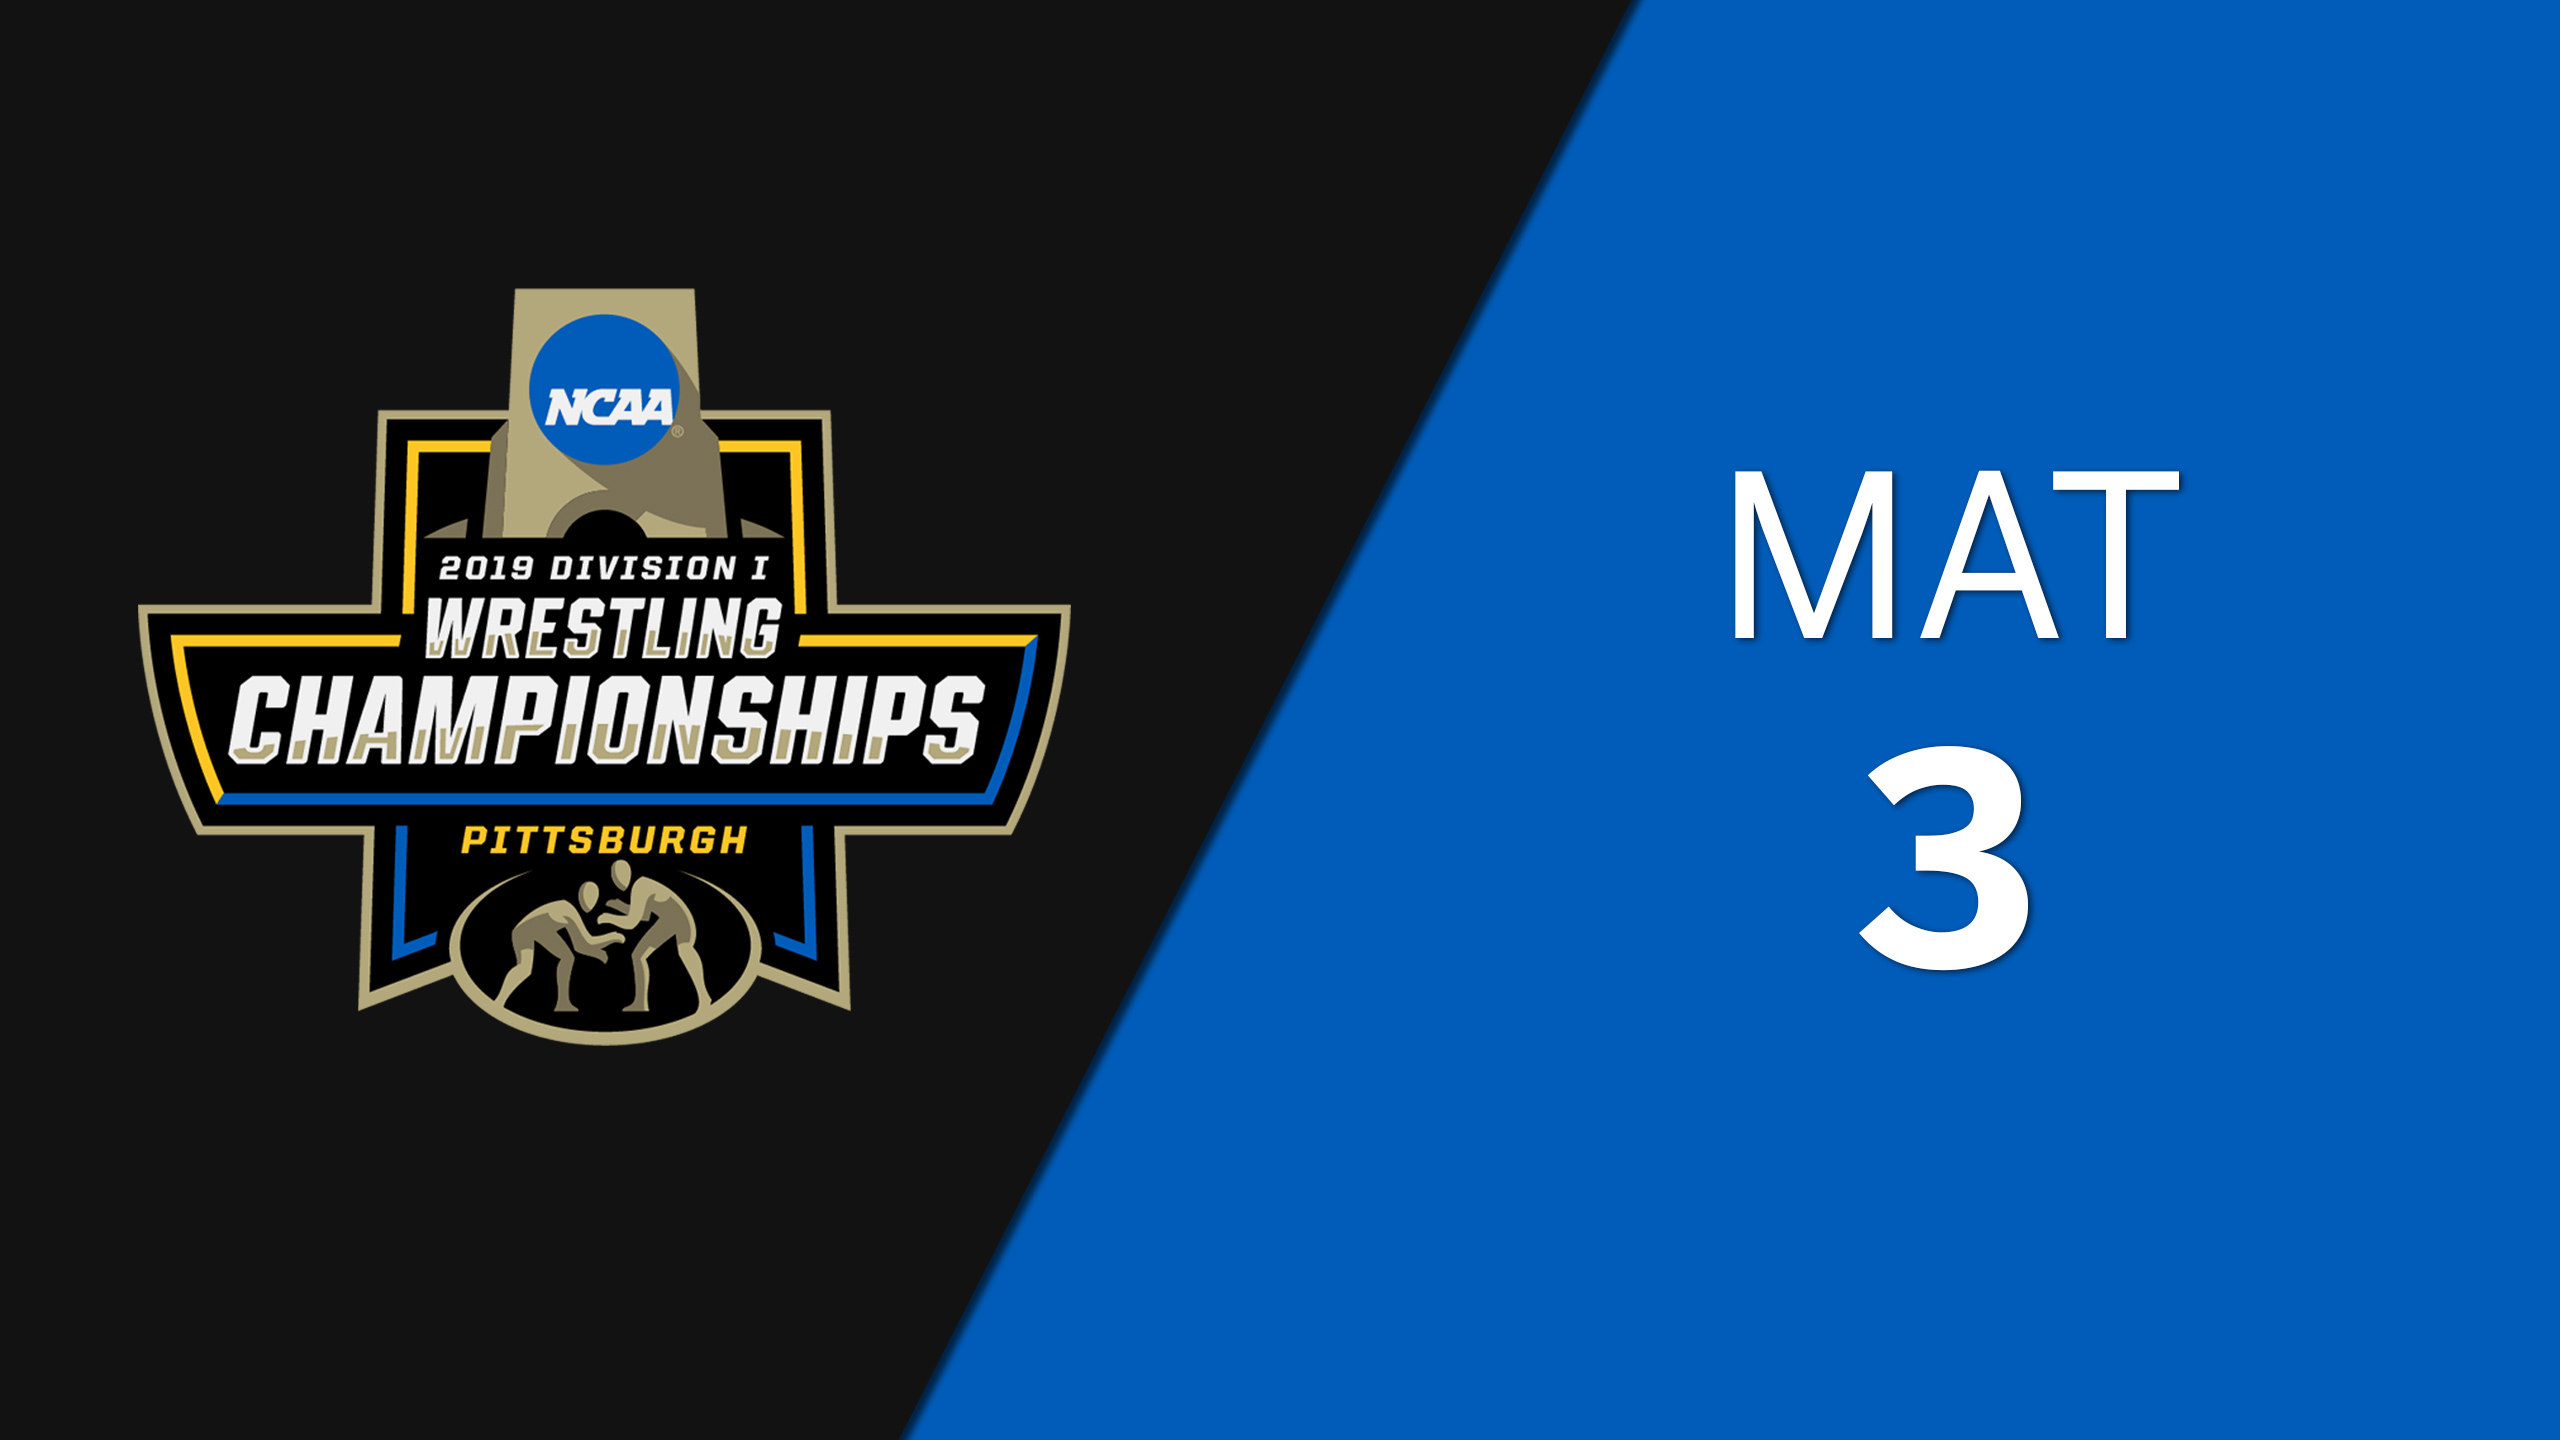 NCAA Wrestling Championship (Mat 3, Medal Round)